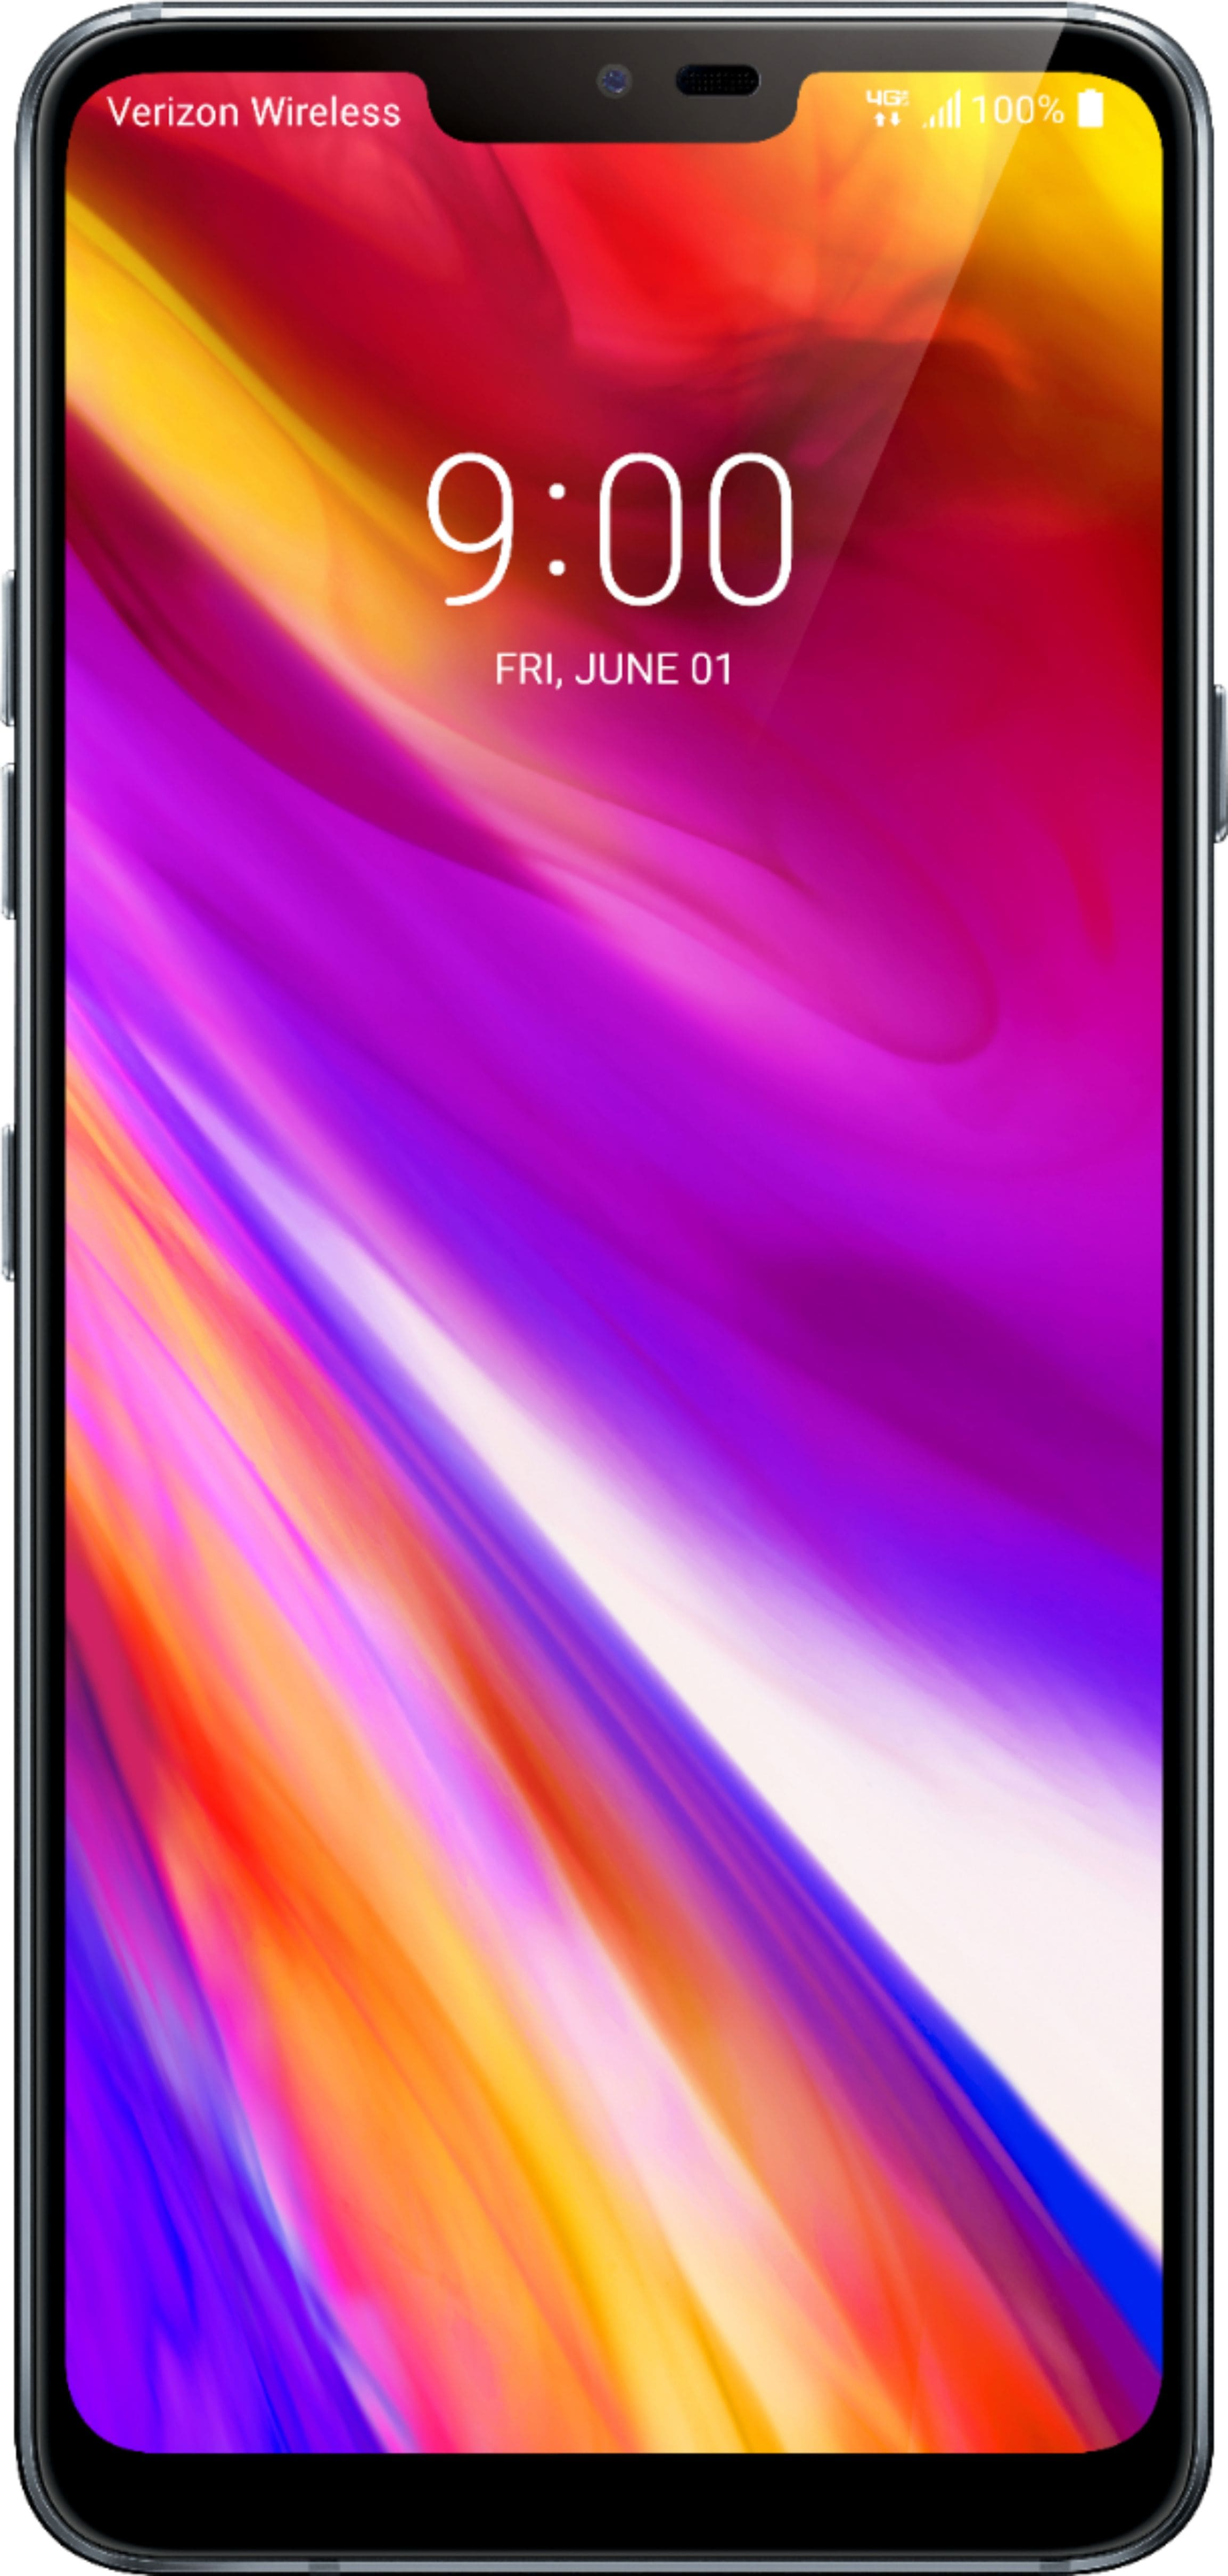 Verizon Customers: 64GB LG G7 ThinQ - $10/mo on 24-Mo Payment Plan or $240 One-Time Payment (+ $40 Activation/Upgrade Fee) - $280 + tax No Bill Credits @ Best Buy